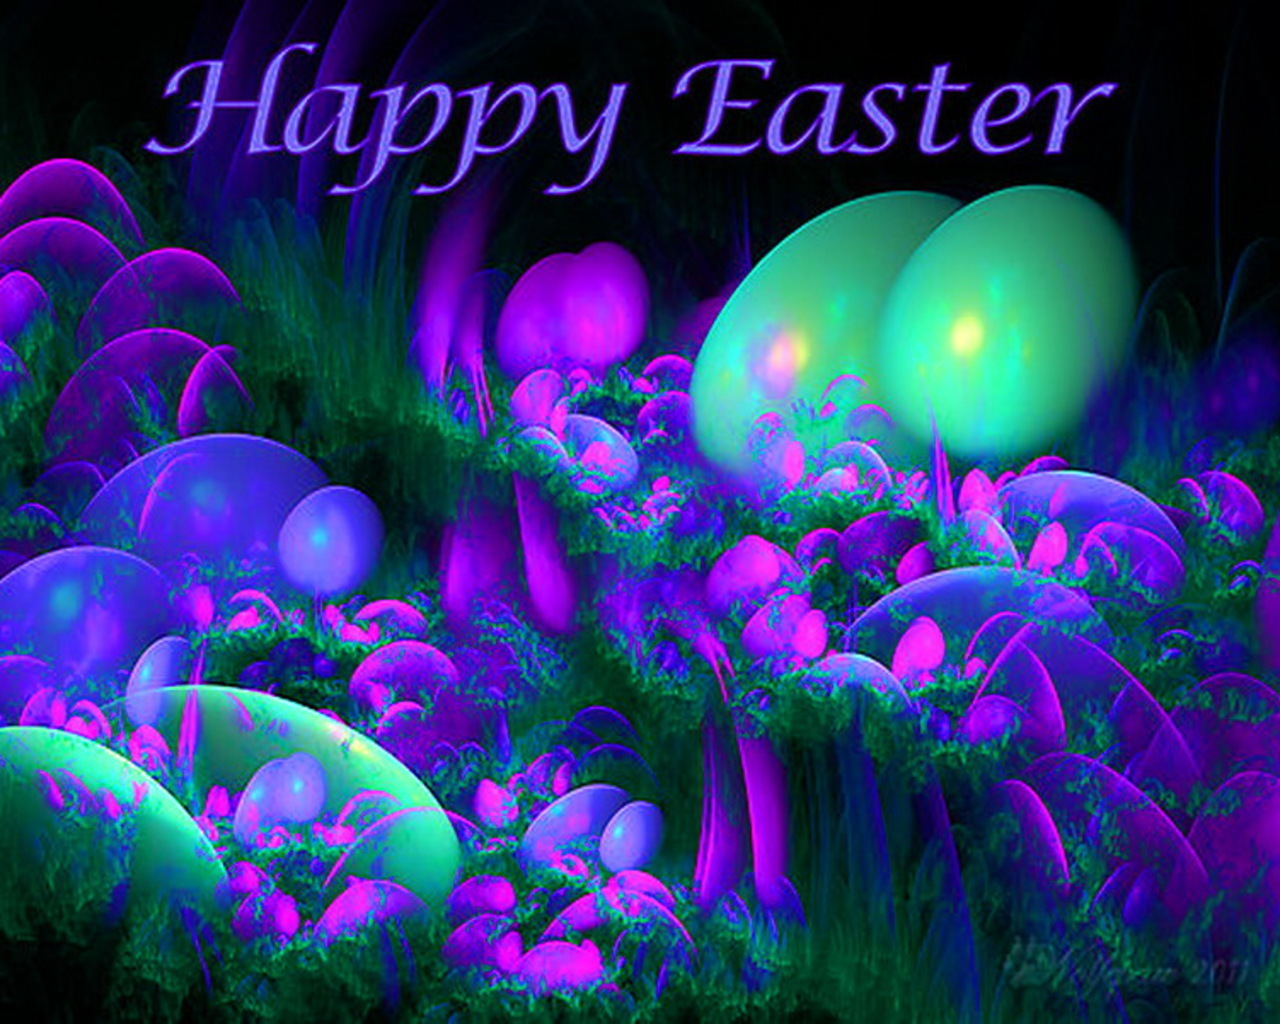 HAPPY-EASTER-bright-colors-21346682-1280